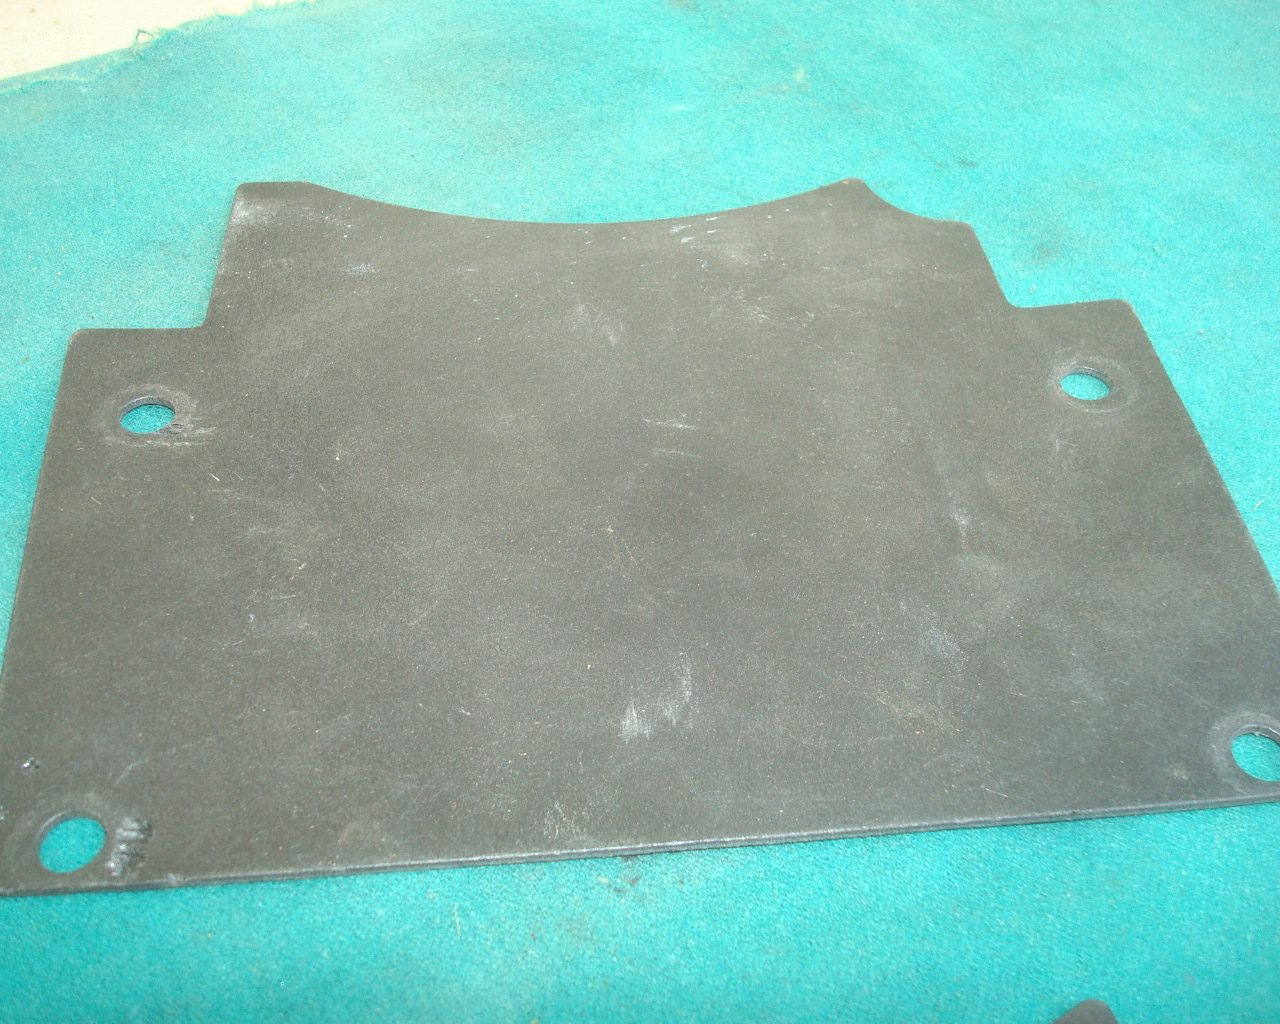 01 to 10 CB Cover, trunk cover (2 of, this is one) GL1800